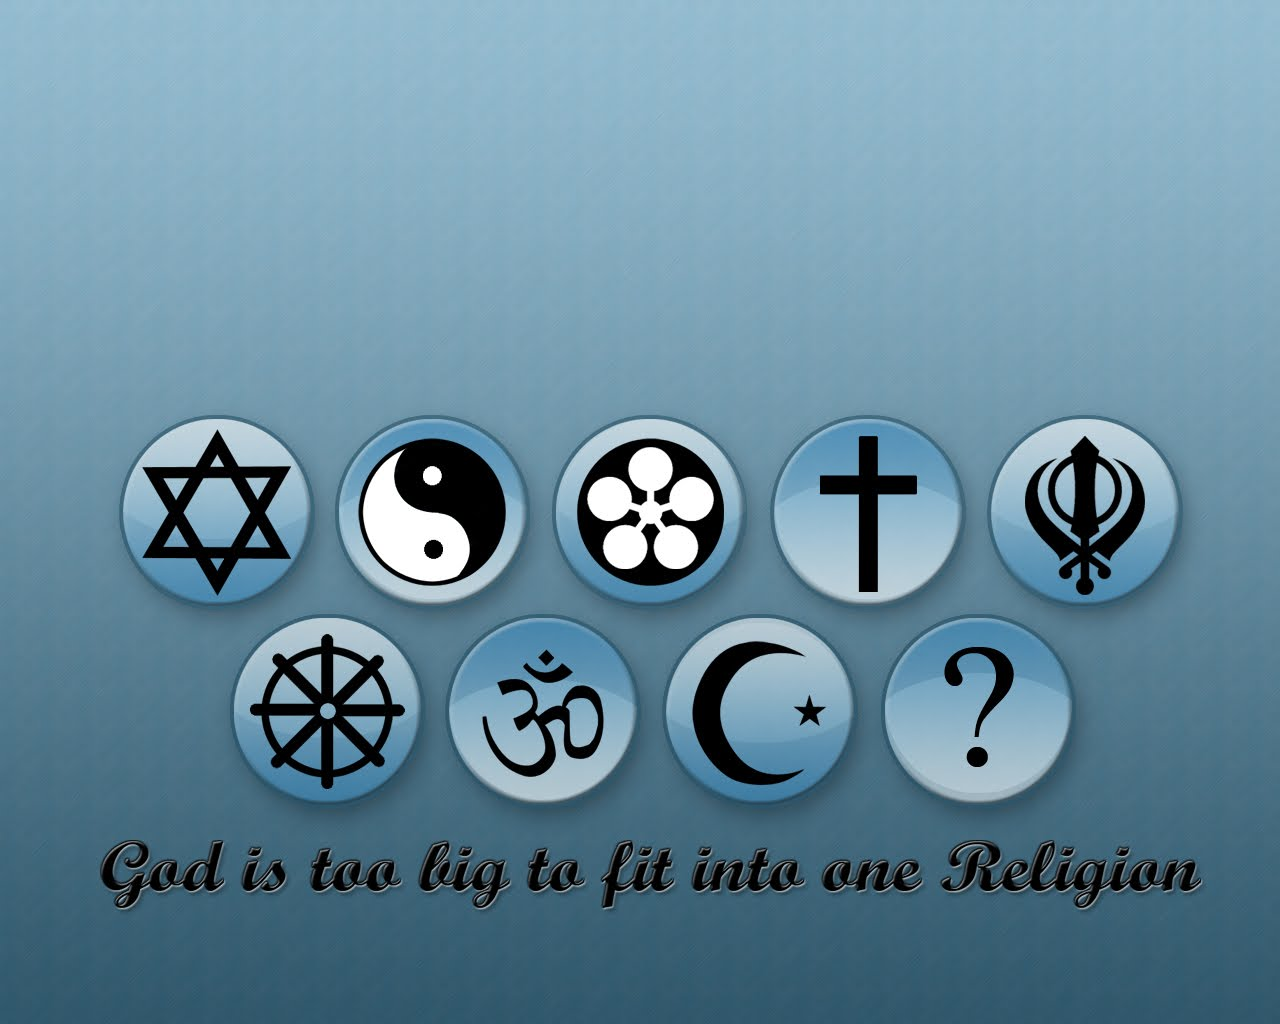 http://2.bp.blogspot.com/_Or1keC5I6c0/SxA-Vu_pS6I/AAAAAAAAAC8/HJp6xArQT5k/s1600/God-is-too-big-to-fit-into-one-religion-wallpaper-comparative-religion-2701575-1280-1024.jpg